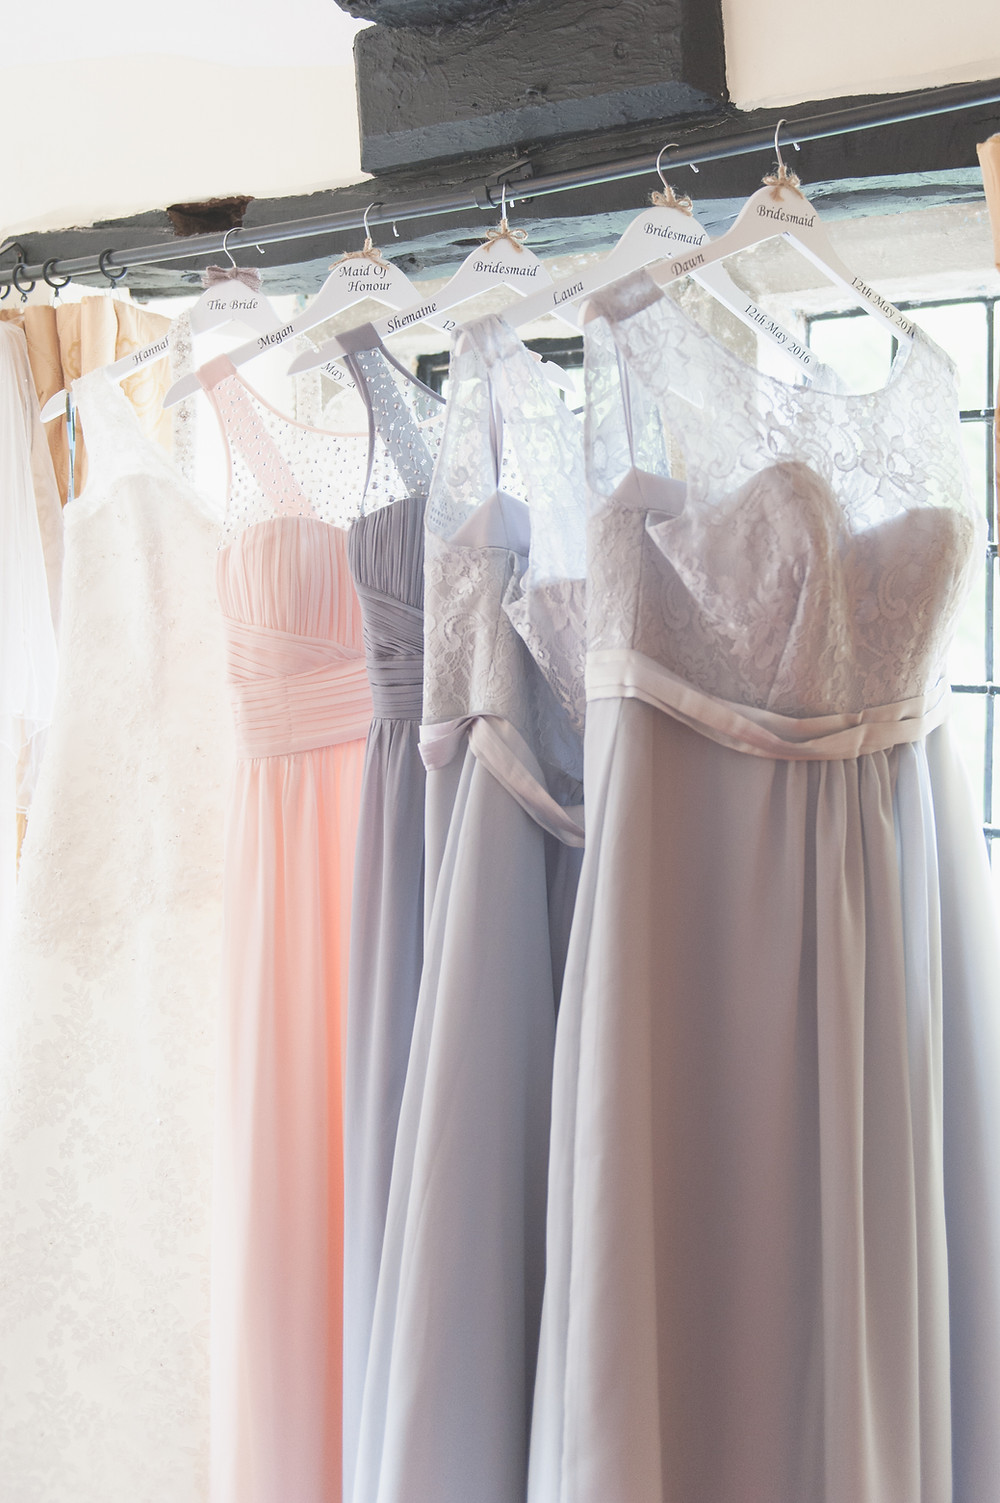 bridesmaids dresses all different